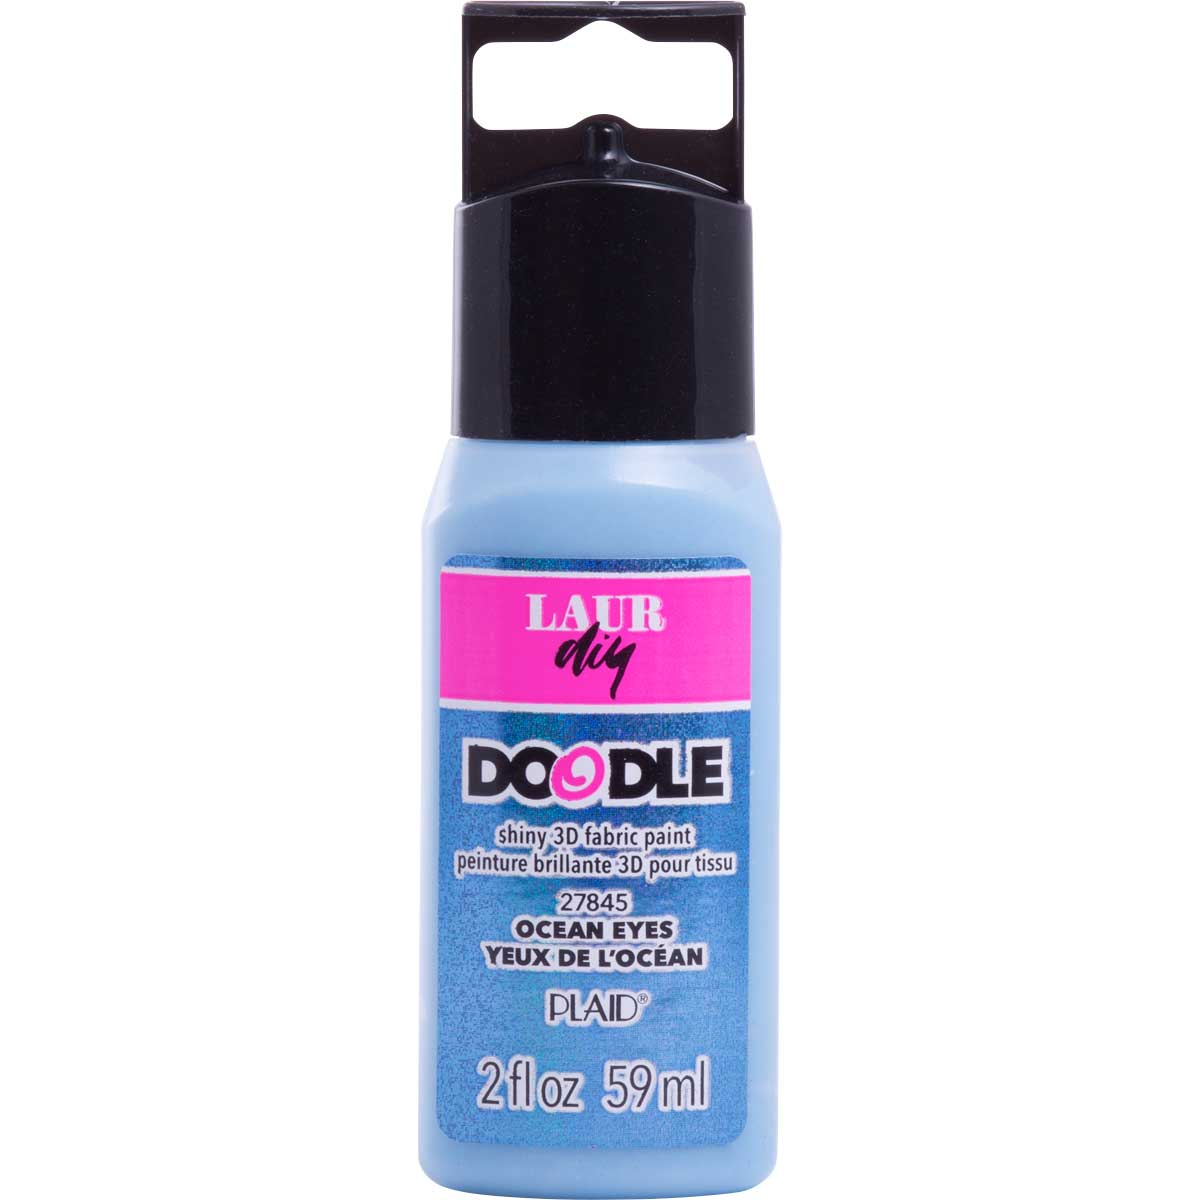 LaurDIY ® Doodle 3D Fabric Paint - Ocean Eyes, 2 oz.